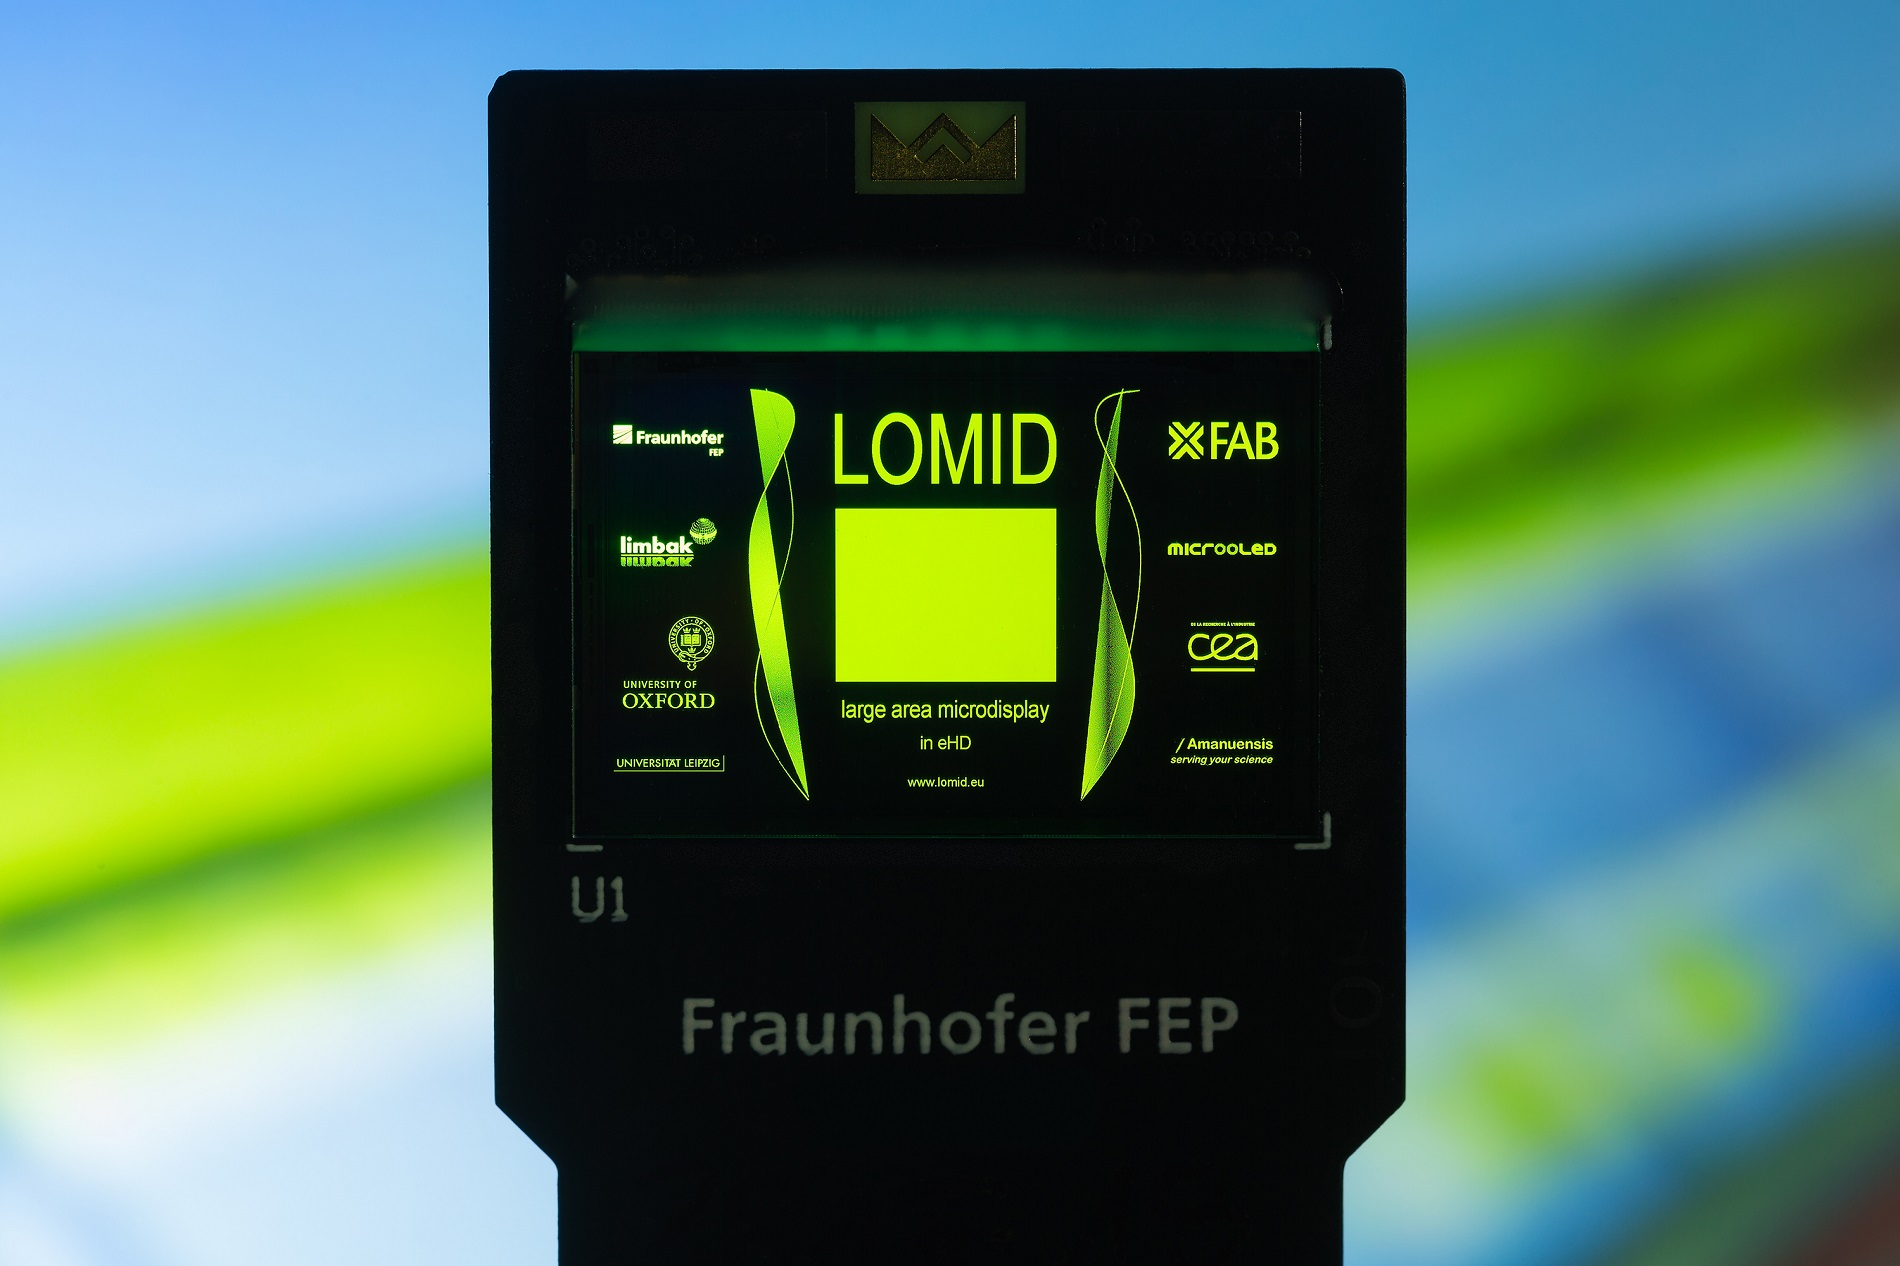 Test and qualification vehicle of the LOMID chip with a screen diagonal of 2.5cm and a resolution of 1920×1200